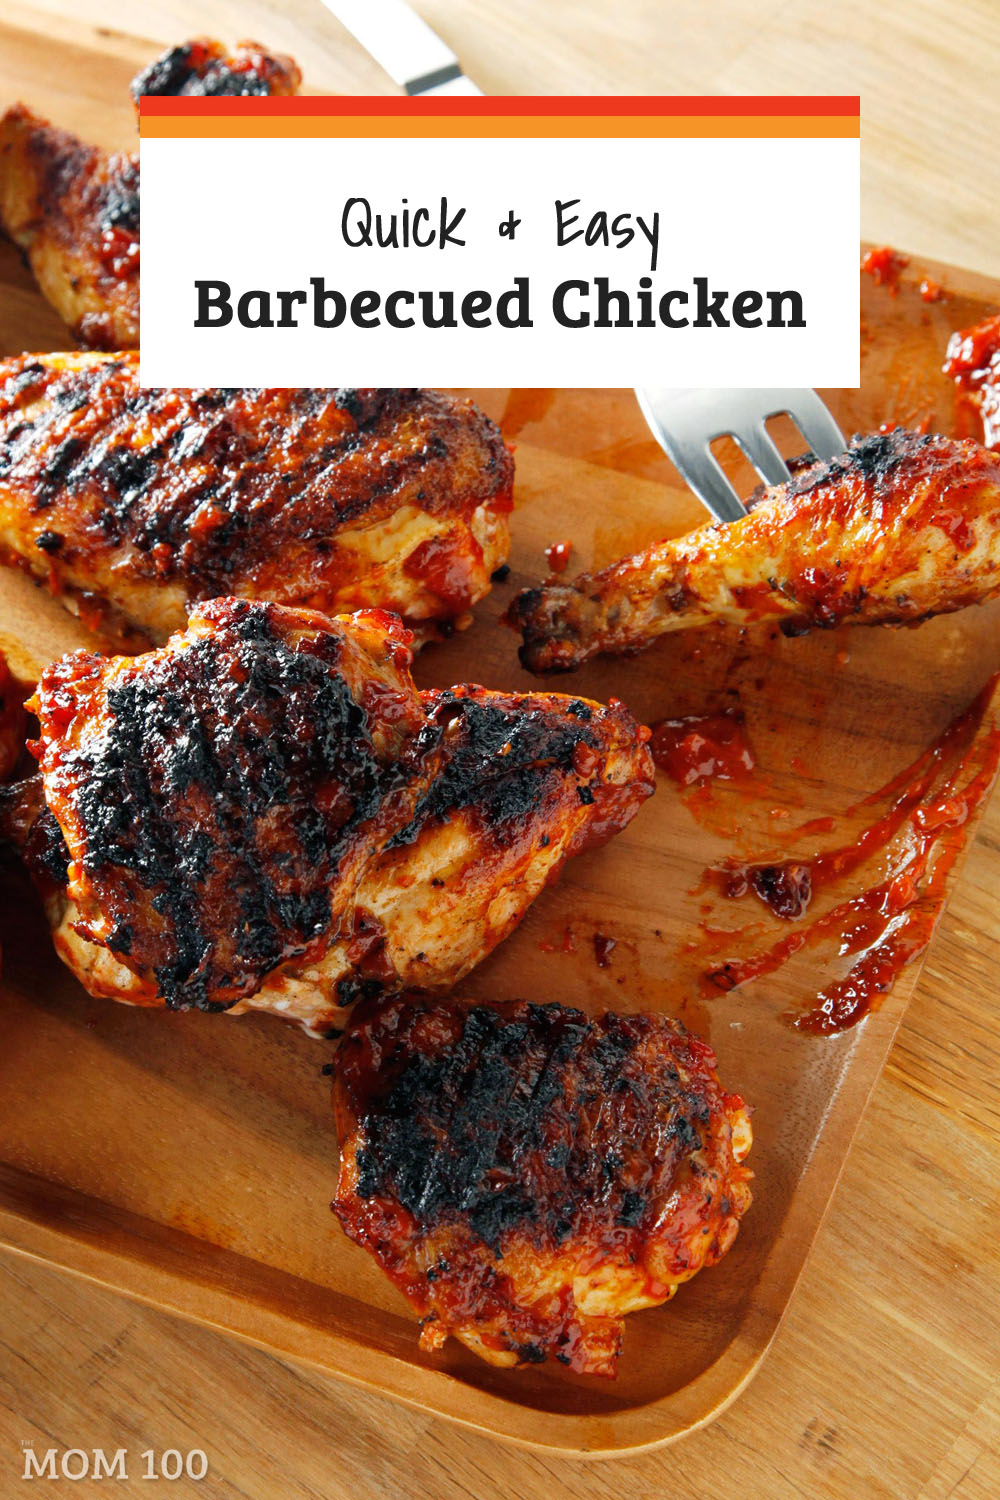 For summer entertaining, when in doubt, barbecued chicken is always the answer.  Plus, this tangy, savory sauce is so easy to make.  Pass the napkins!